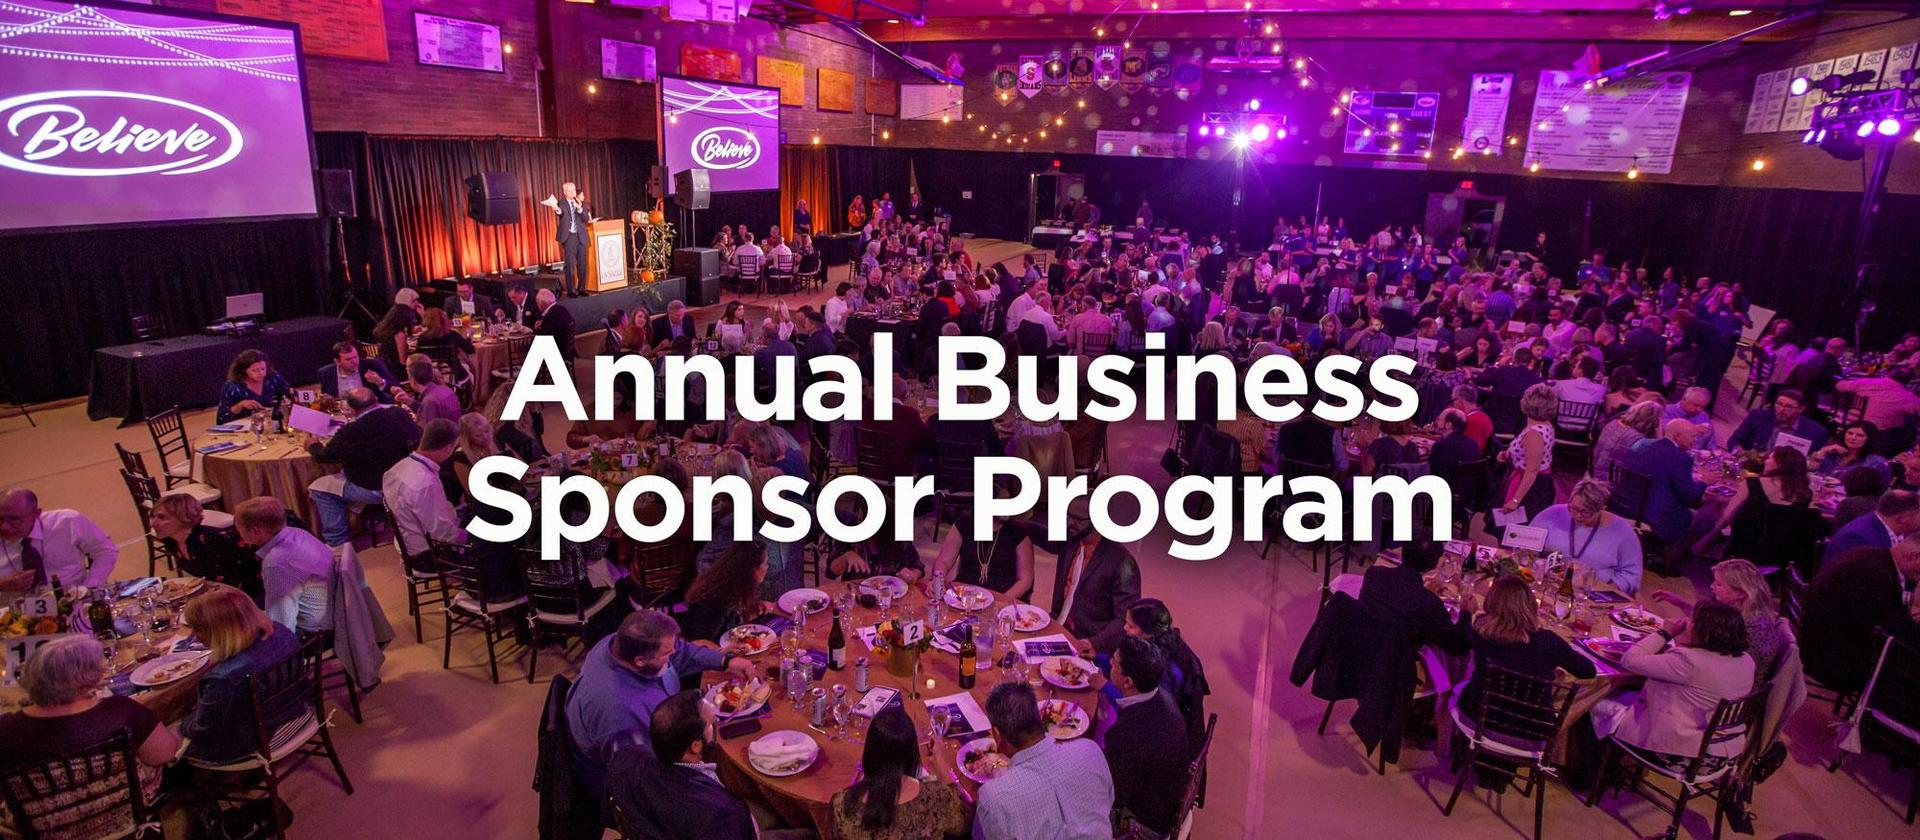 annual business sponsor program header image of Believe